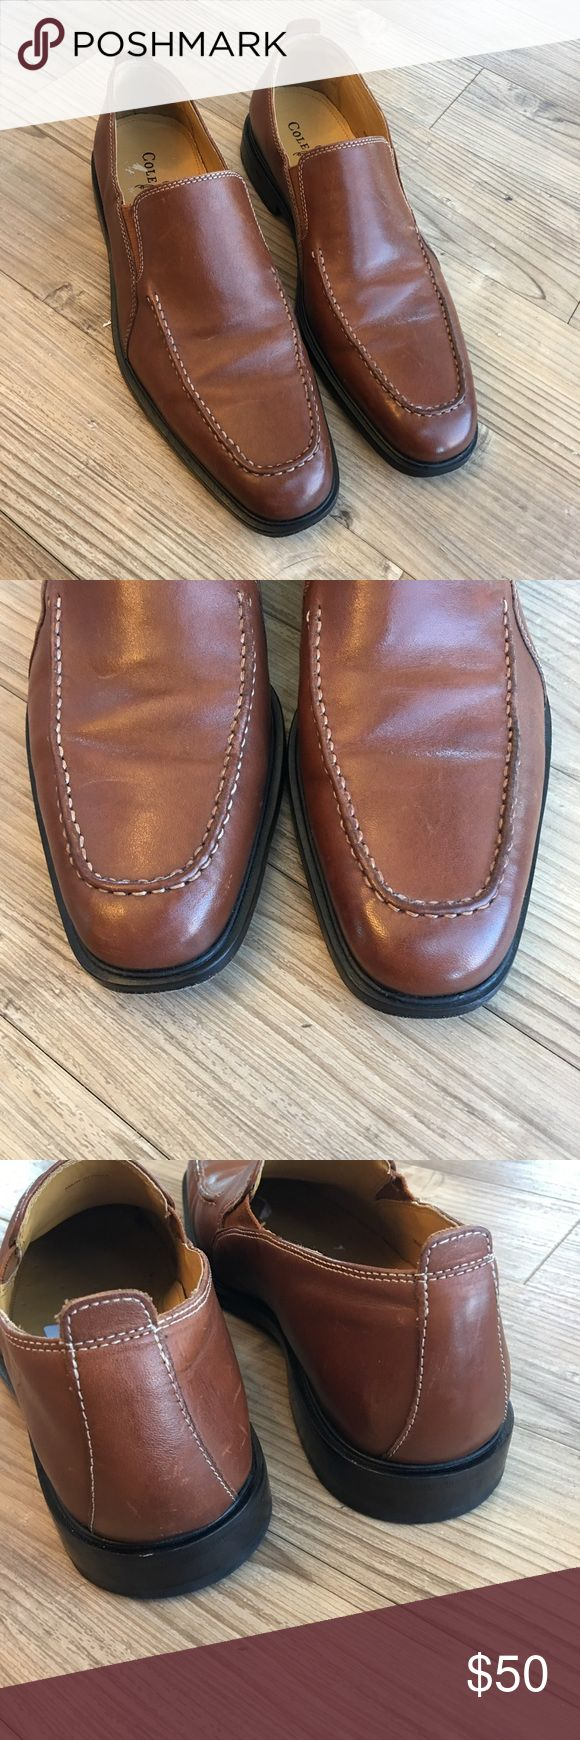 Cole Haan 'Beckett' Men's Slip On Loafers Gently worn Men's Cole Haan Becket Brown Leather Slip On Loafer Shoes Original Retail Price $168 Size 8B Color Brown Slip on Apron Toe Style: Beckett Style number: C06402 Cole Haan Shoes Loafers & Slip-Ons